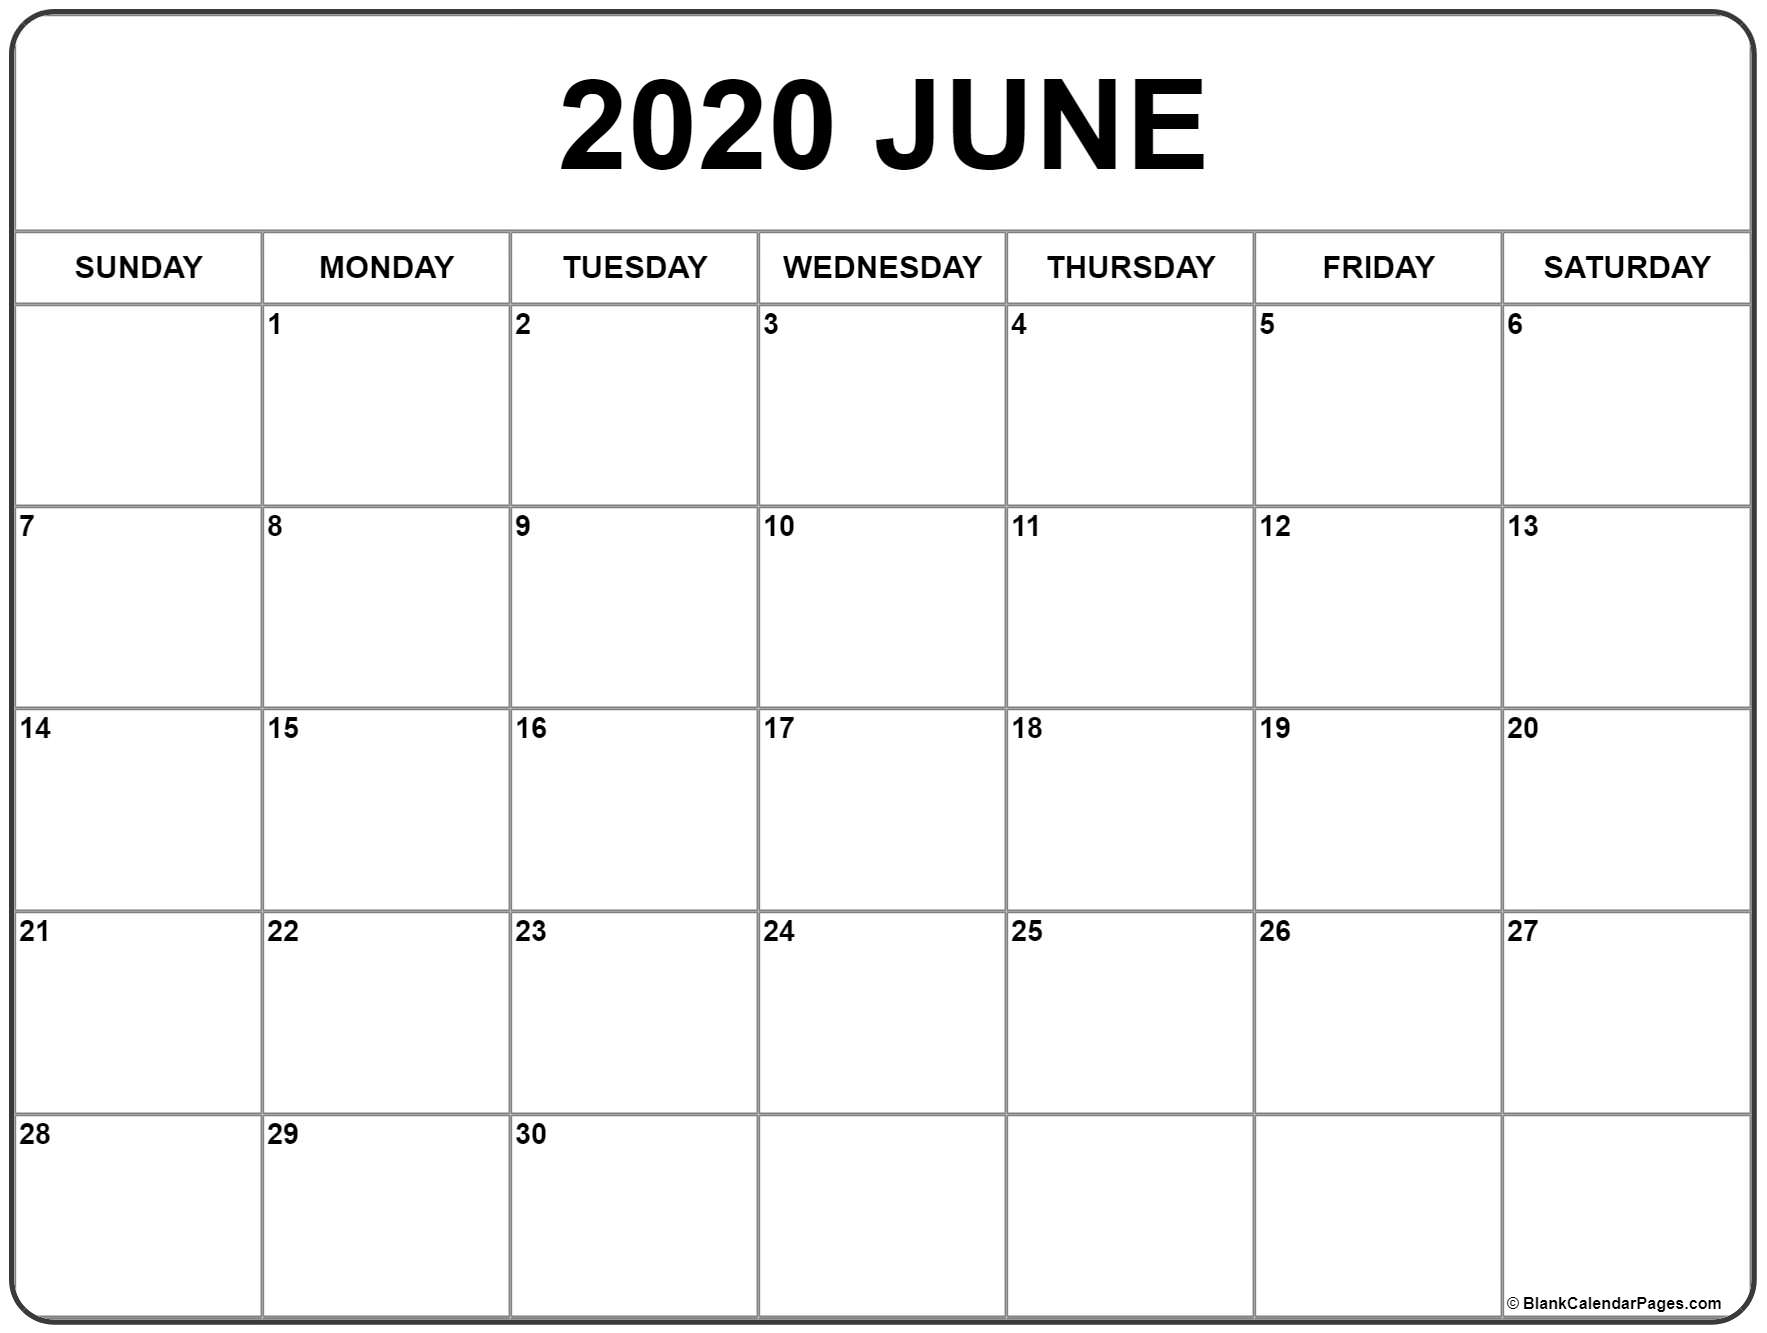 June 2020 Calendar | Free Printable Monthly Calendars throughout Year Calendar 2020 With Space To Write